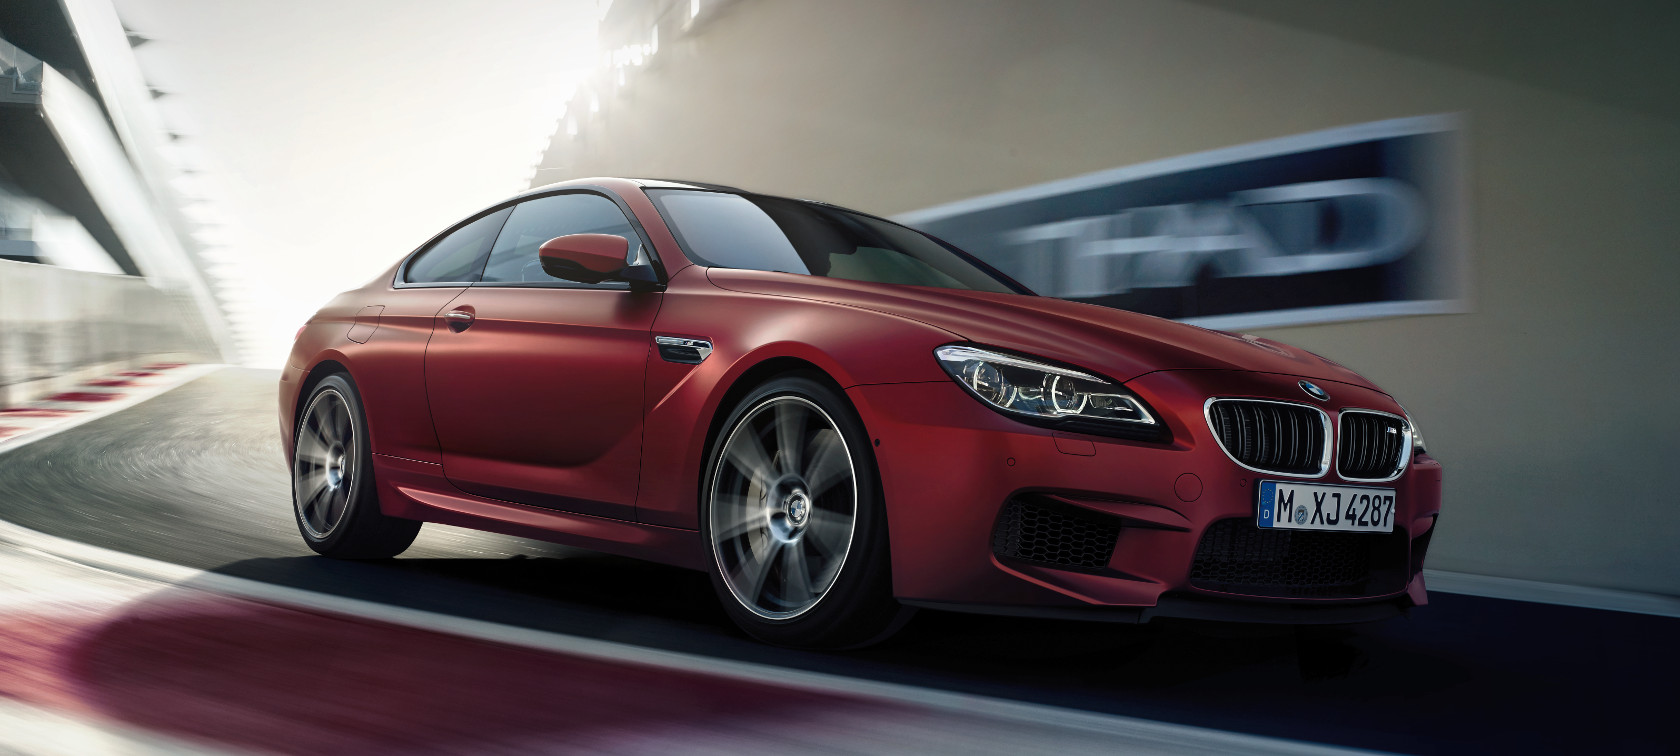 Driving Dynamics and Efficiency in the BMW M6 Coupé